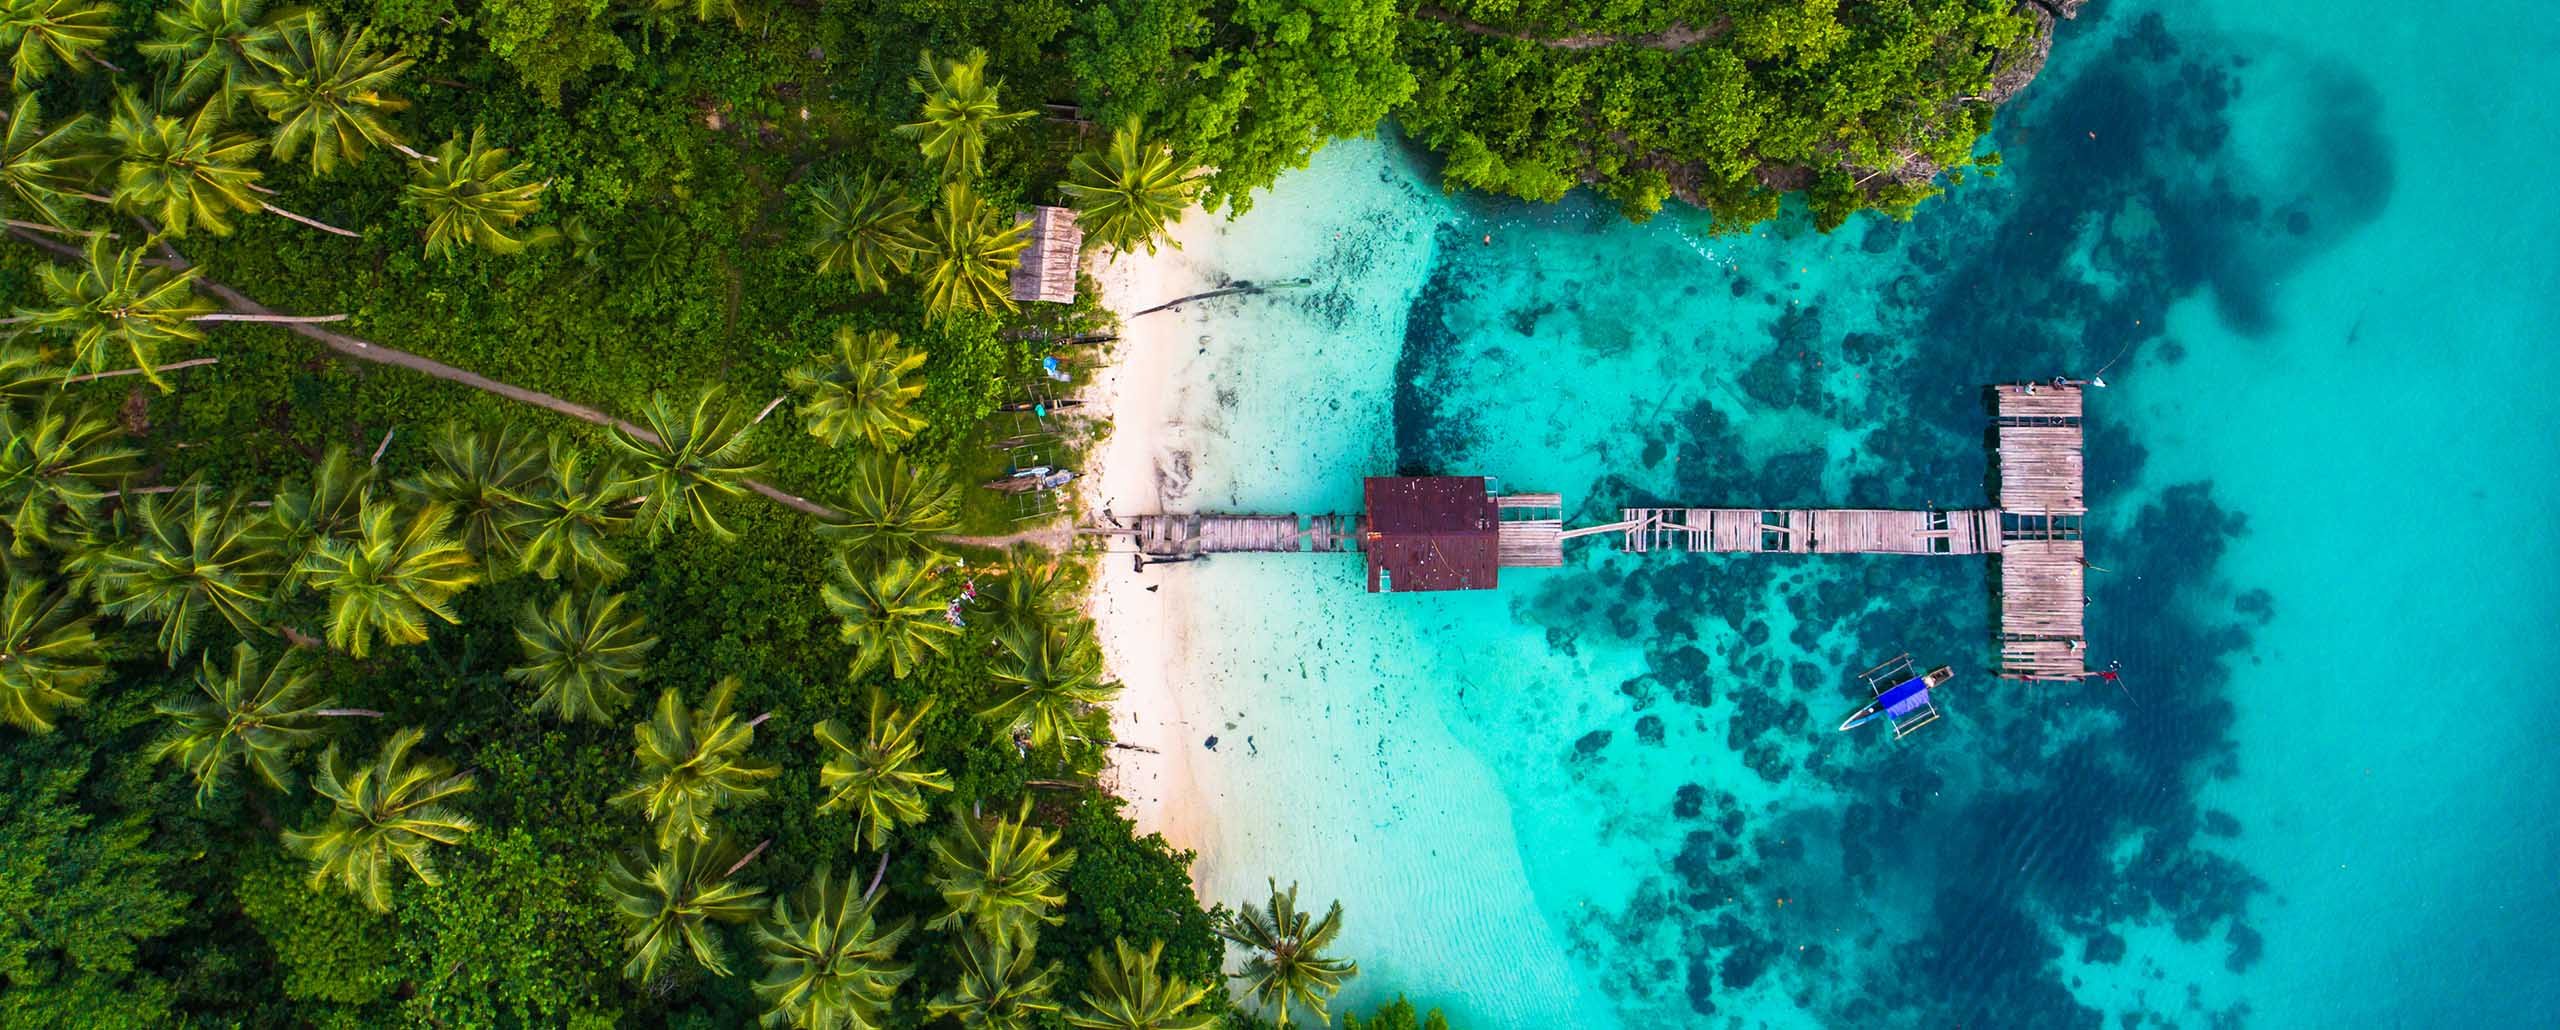 Island-hopping on the extraordinary Prana by Atzaro in Raja Ampat, Indonesia